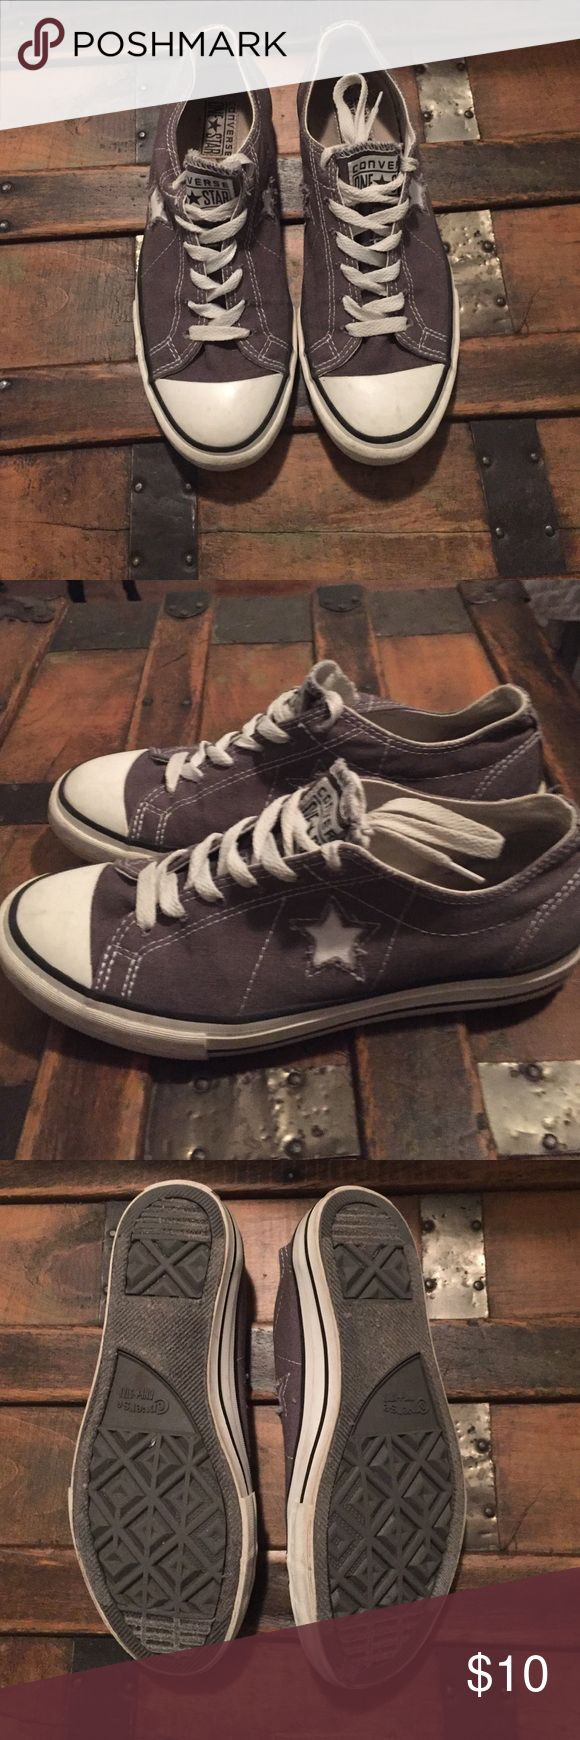 Converse One Star Tennis Shoes Gray Women's size 8.5. Bought from Target Converse One Star Shoes Sneakers